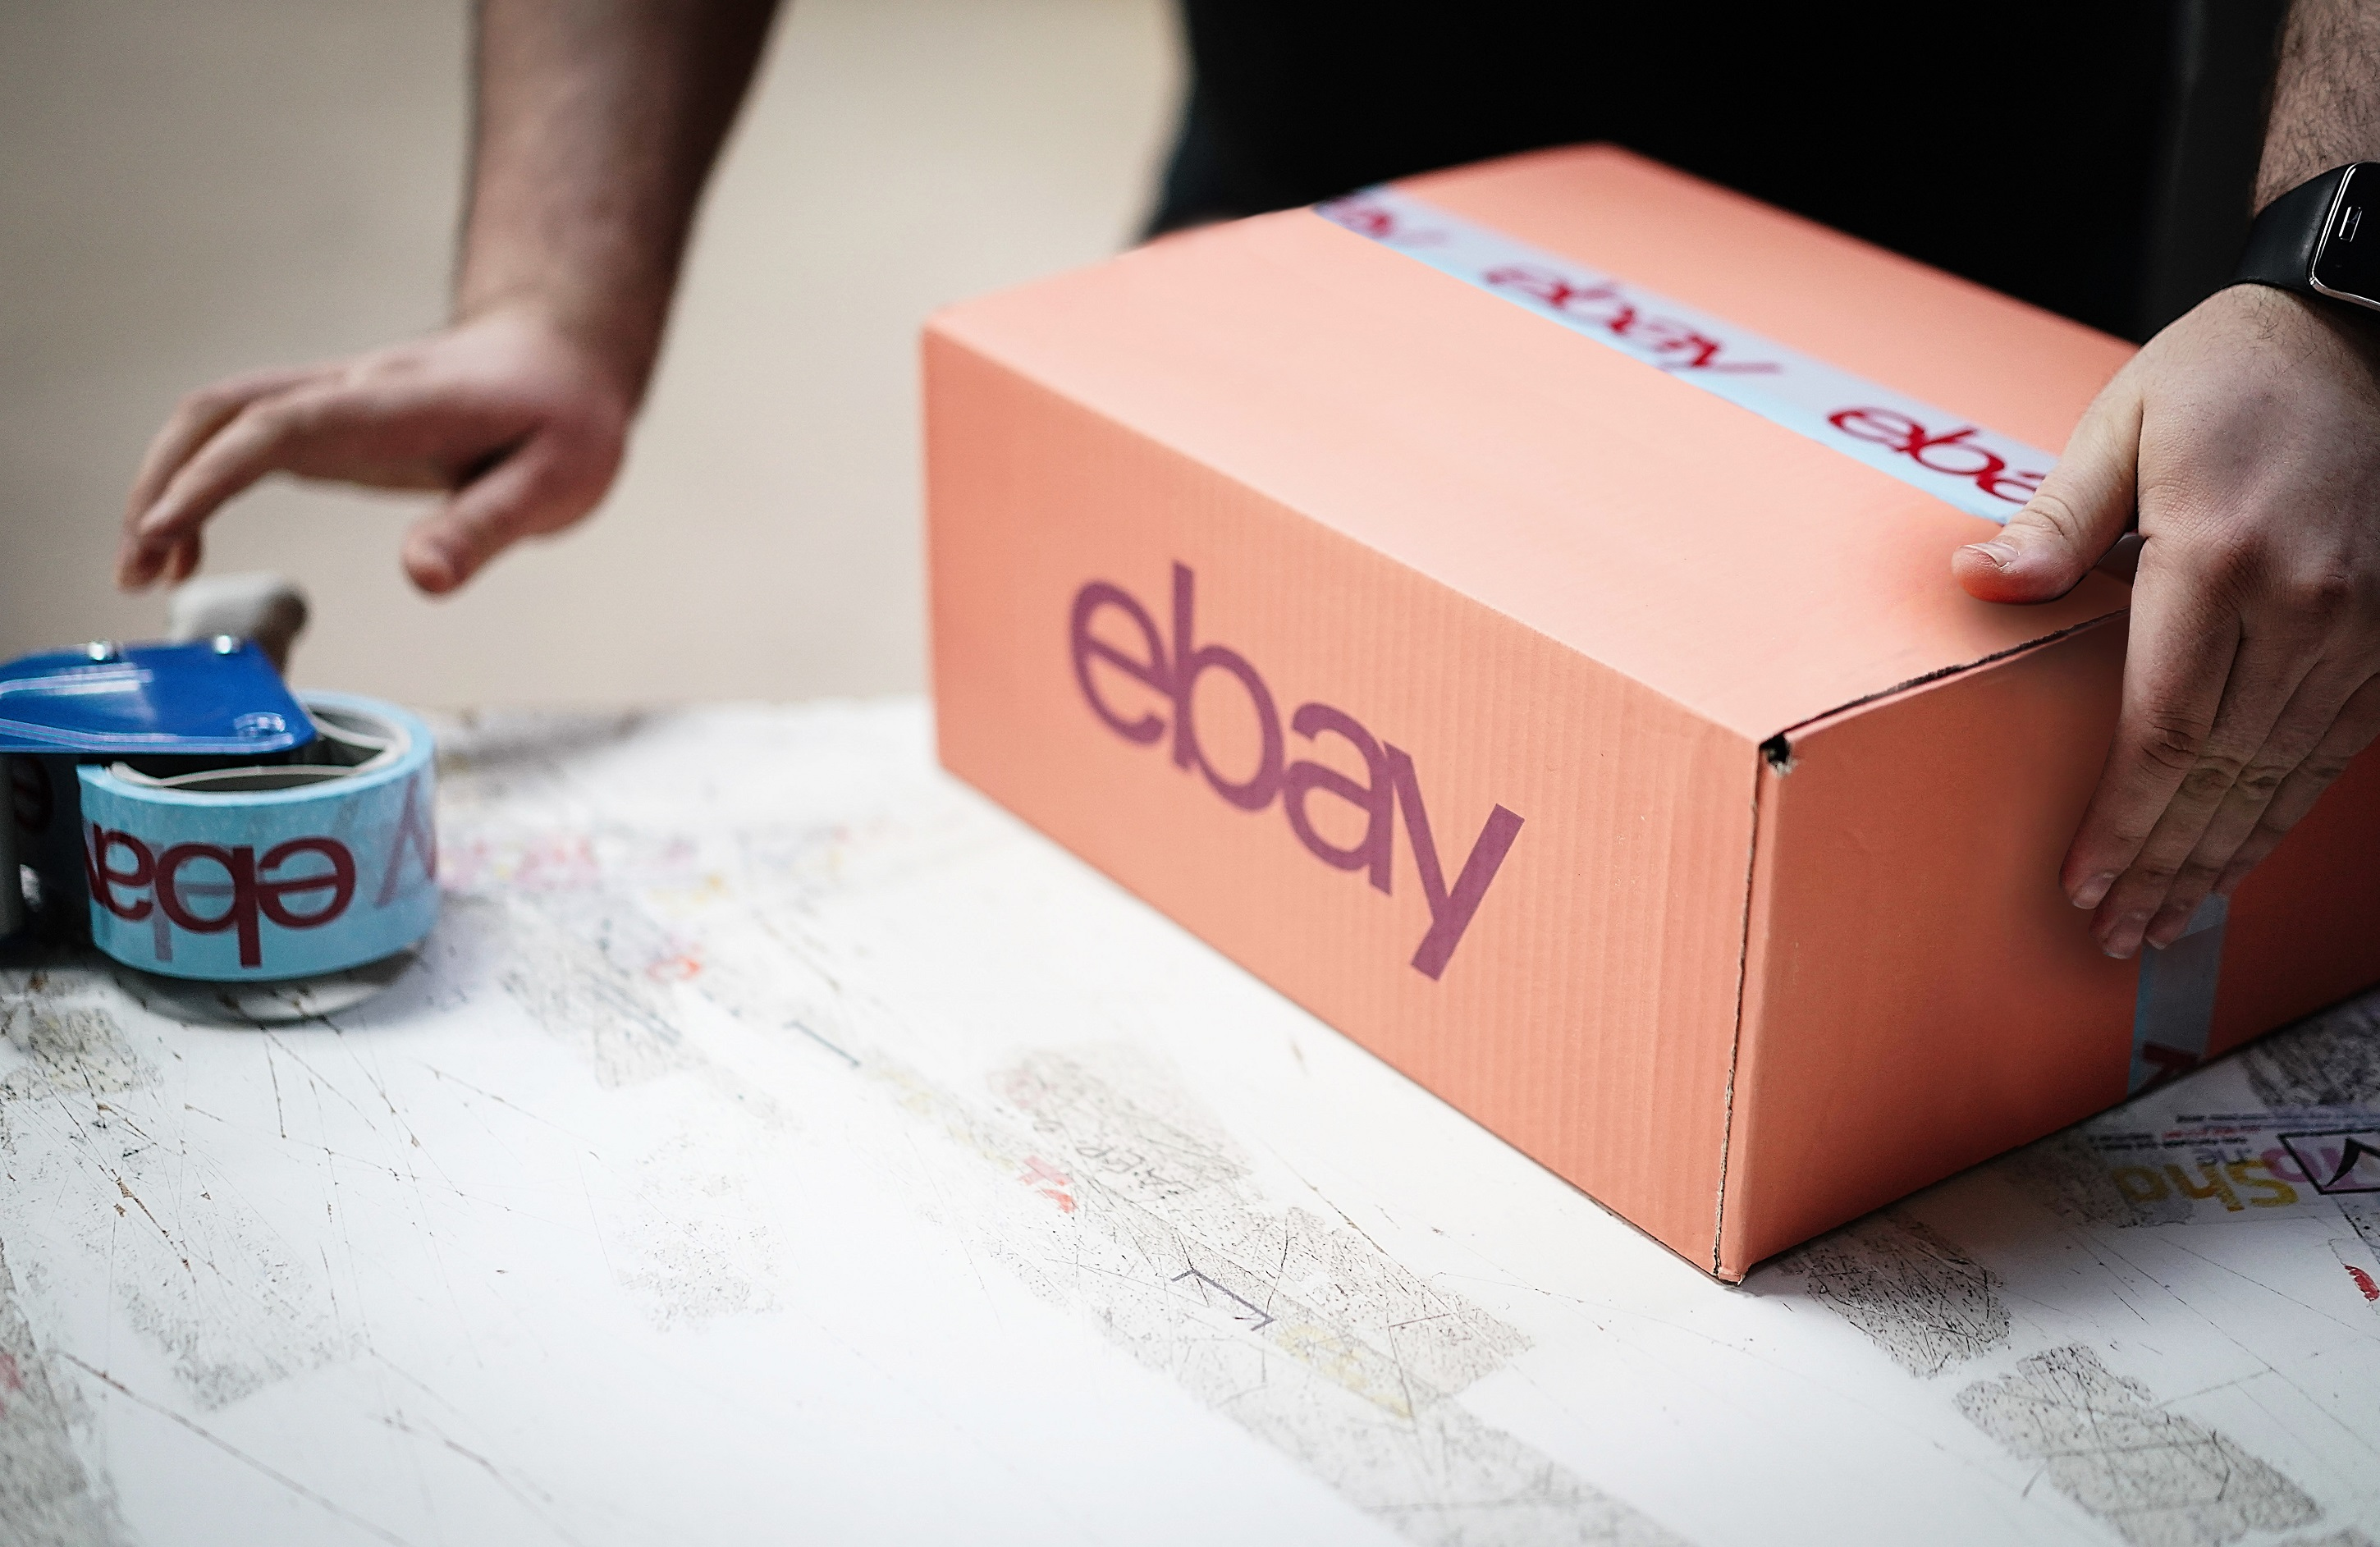 Former Ebay Employees Charged With Sending Threats Disturbing Deliveries